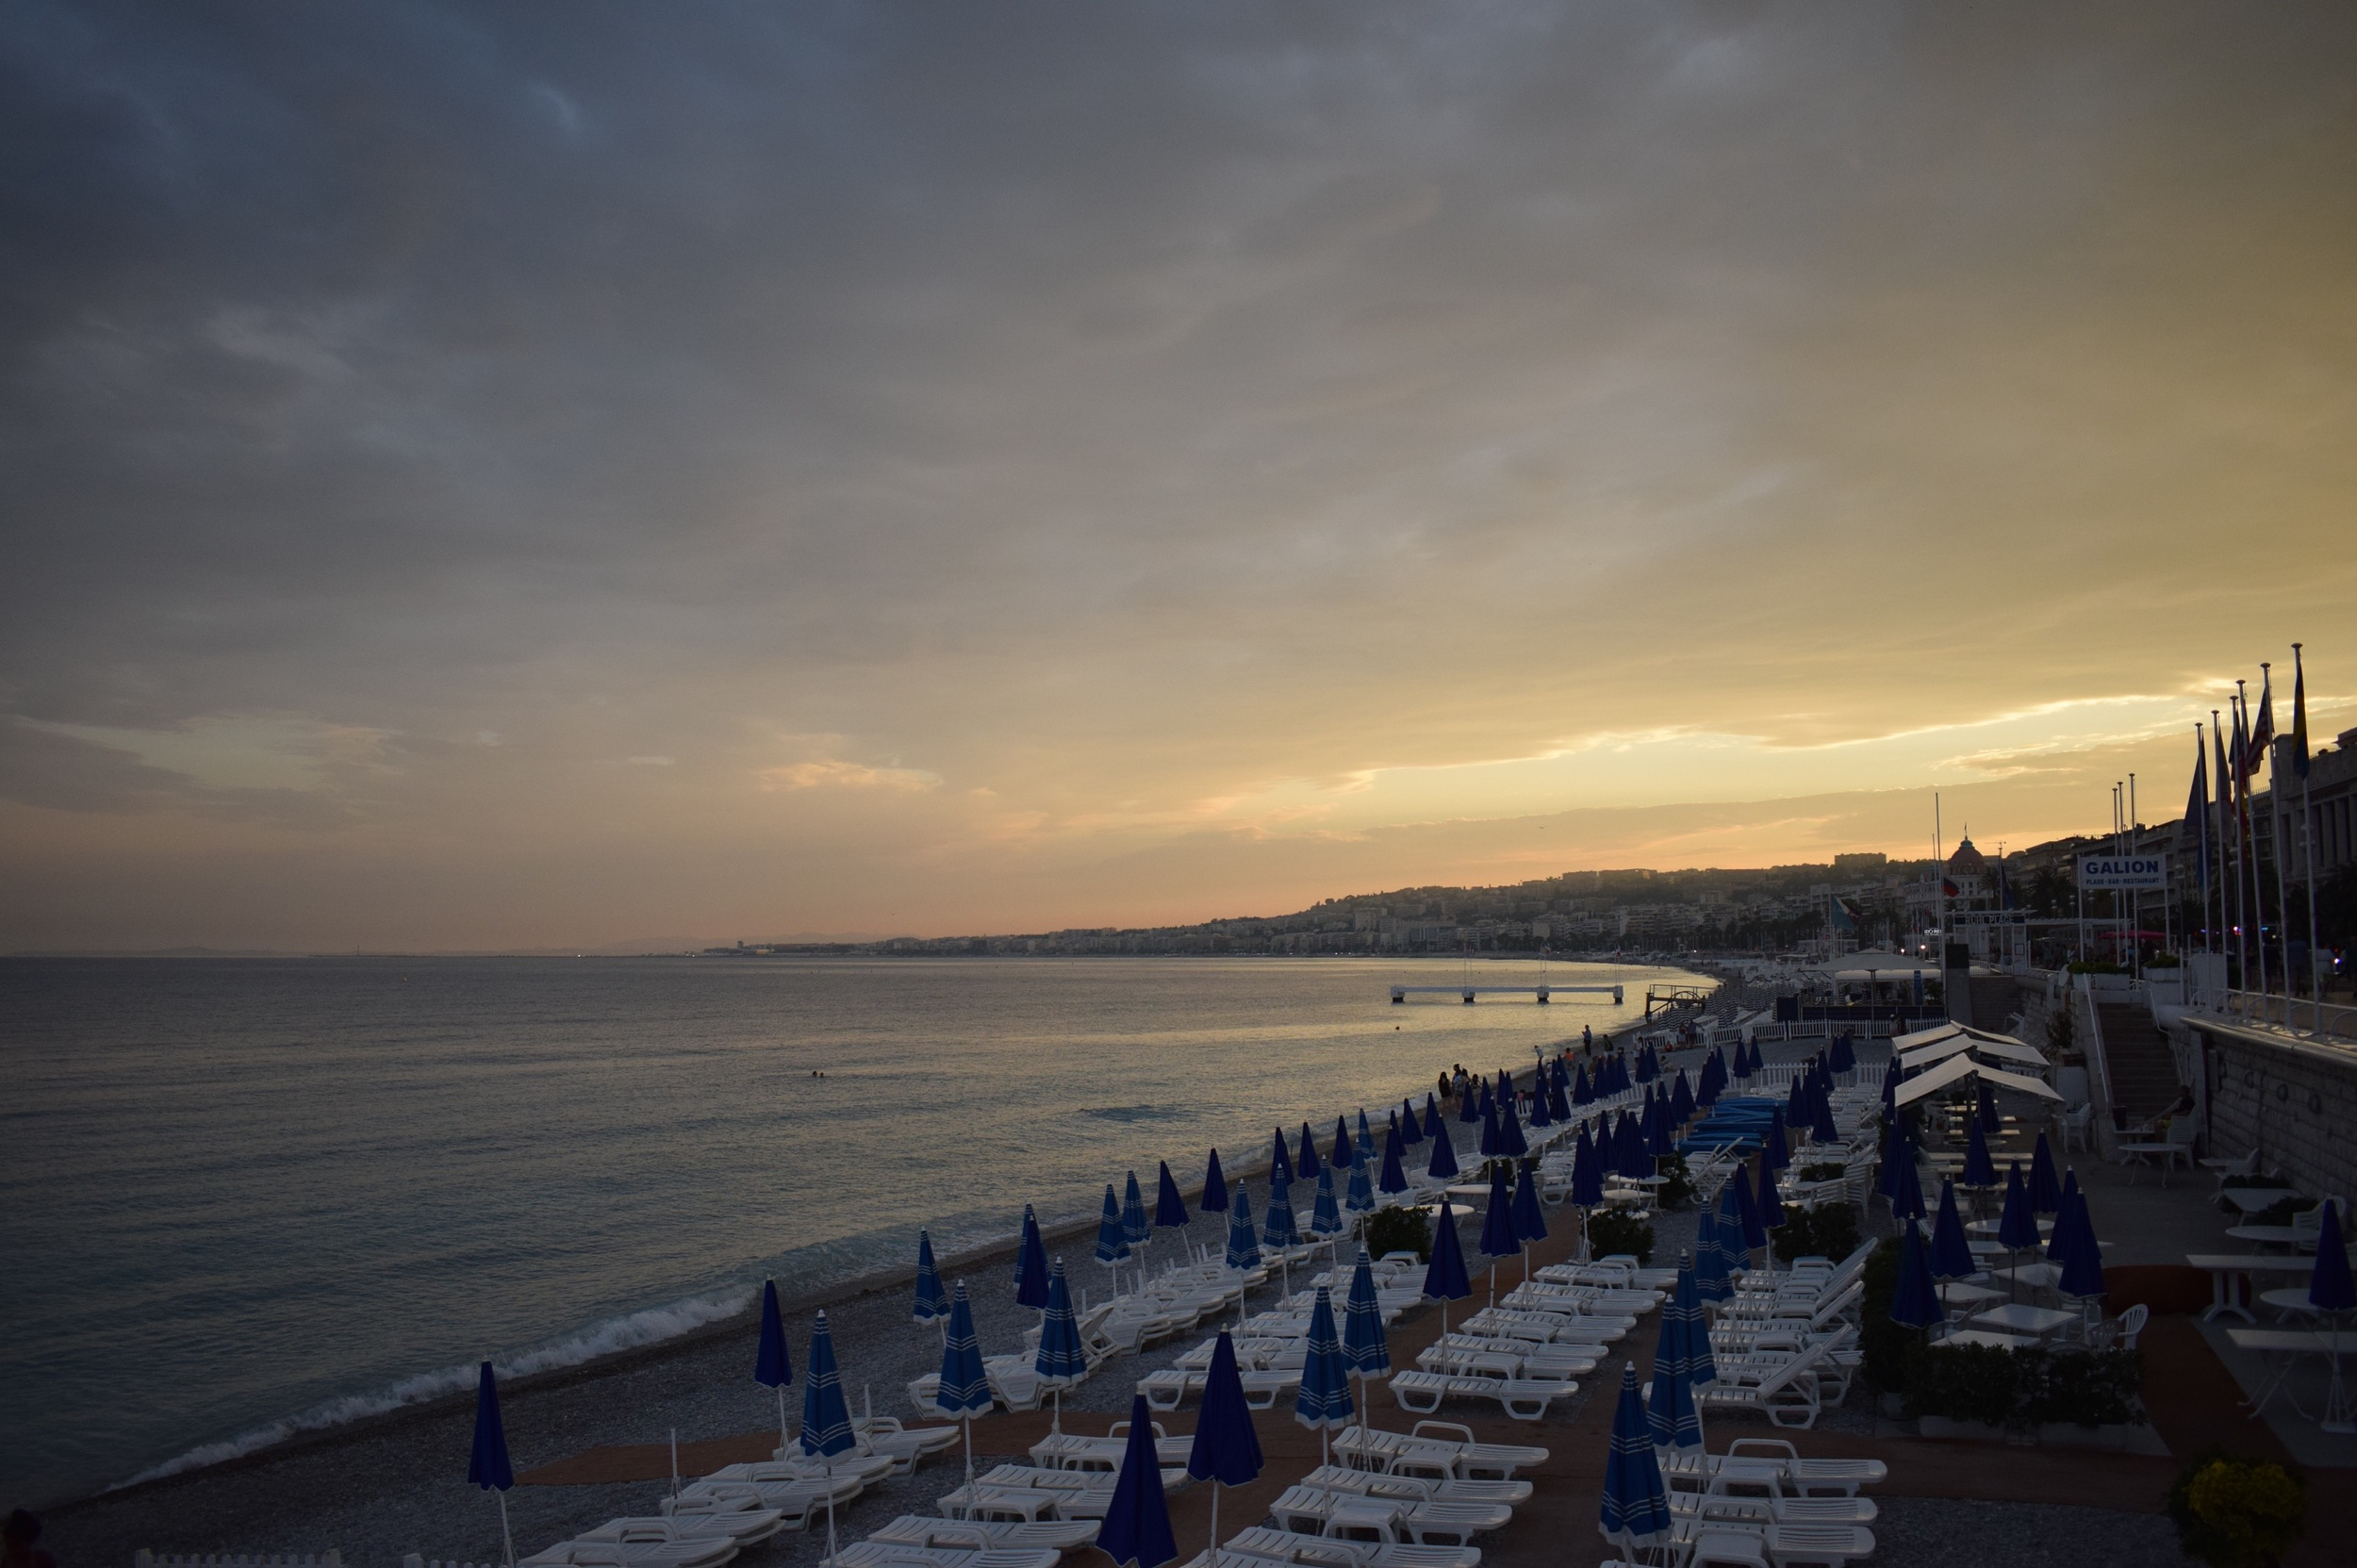 The Promenade des Anglais in Nice, France. Part of the Côte d'Azur.